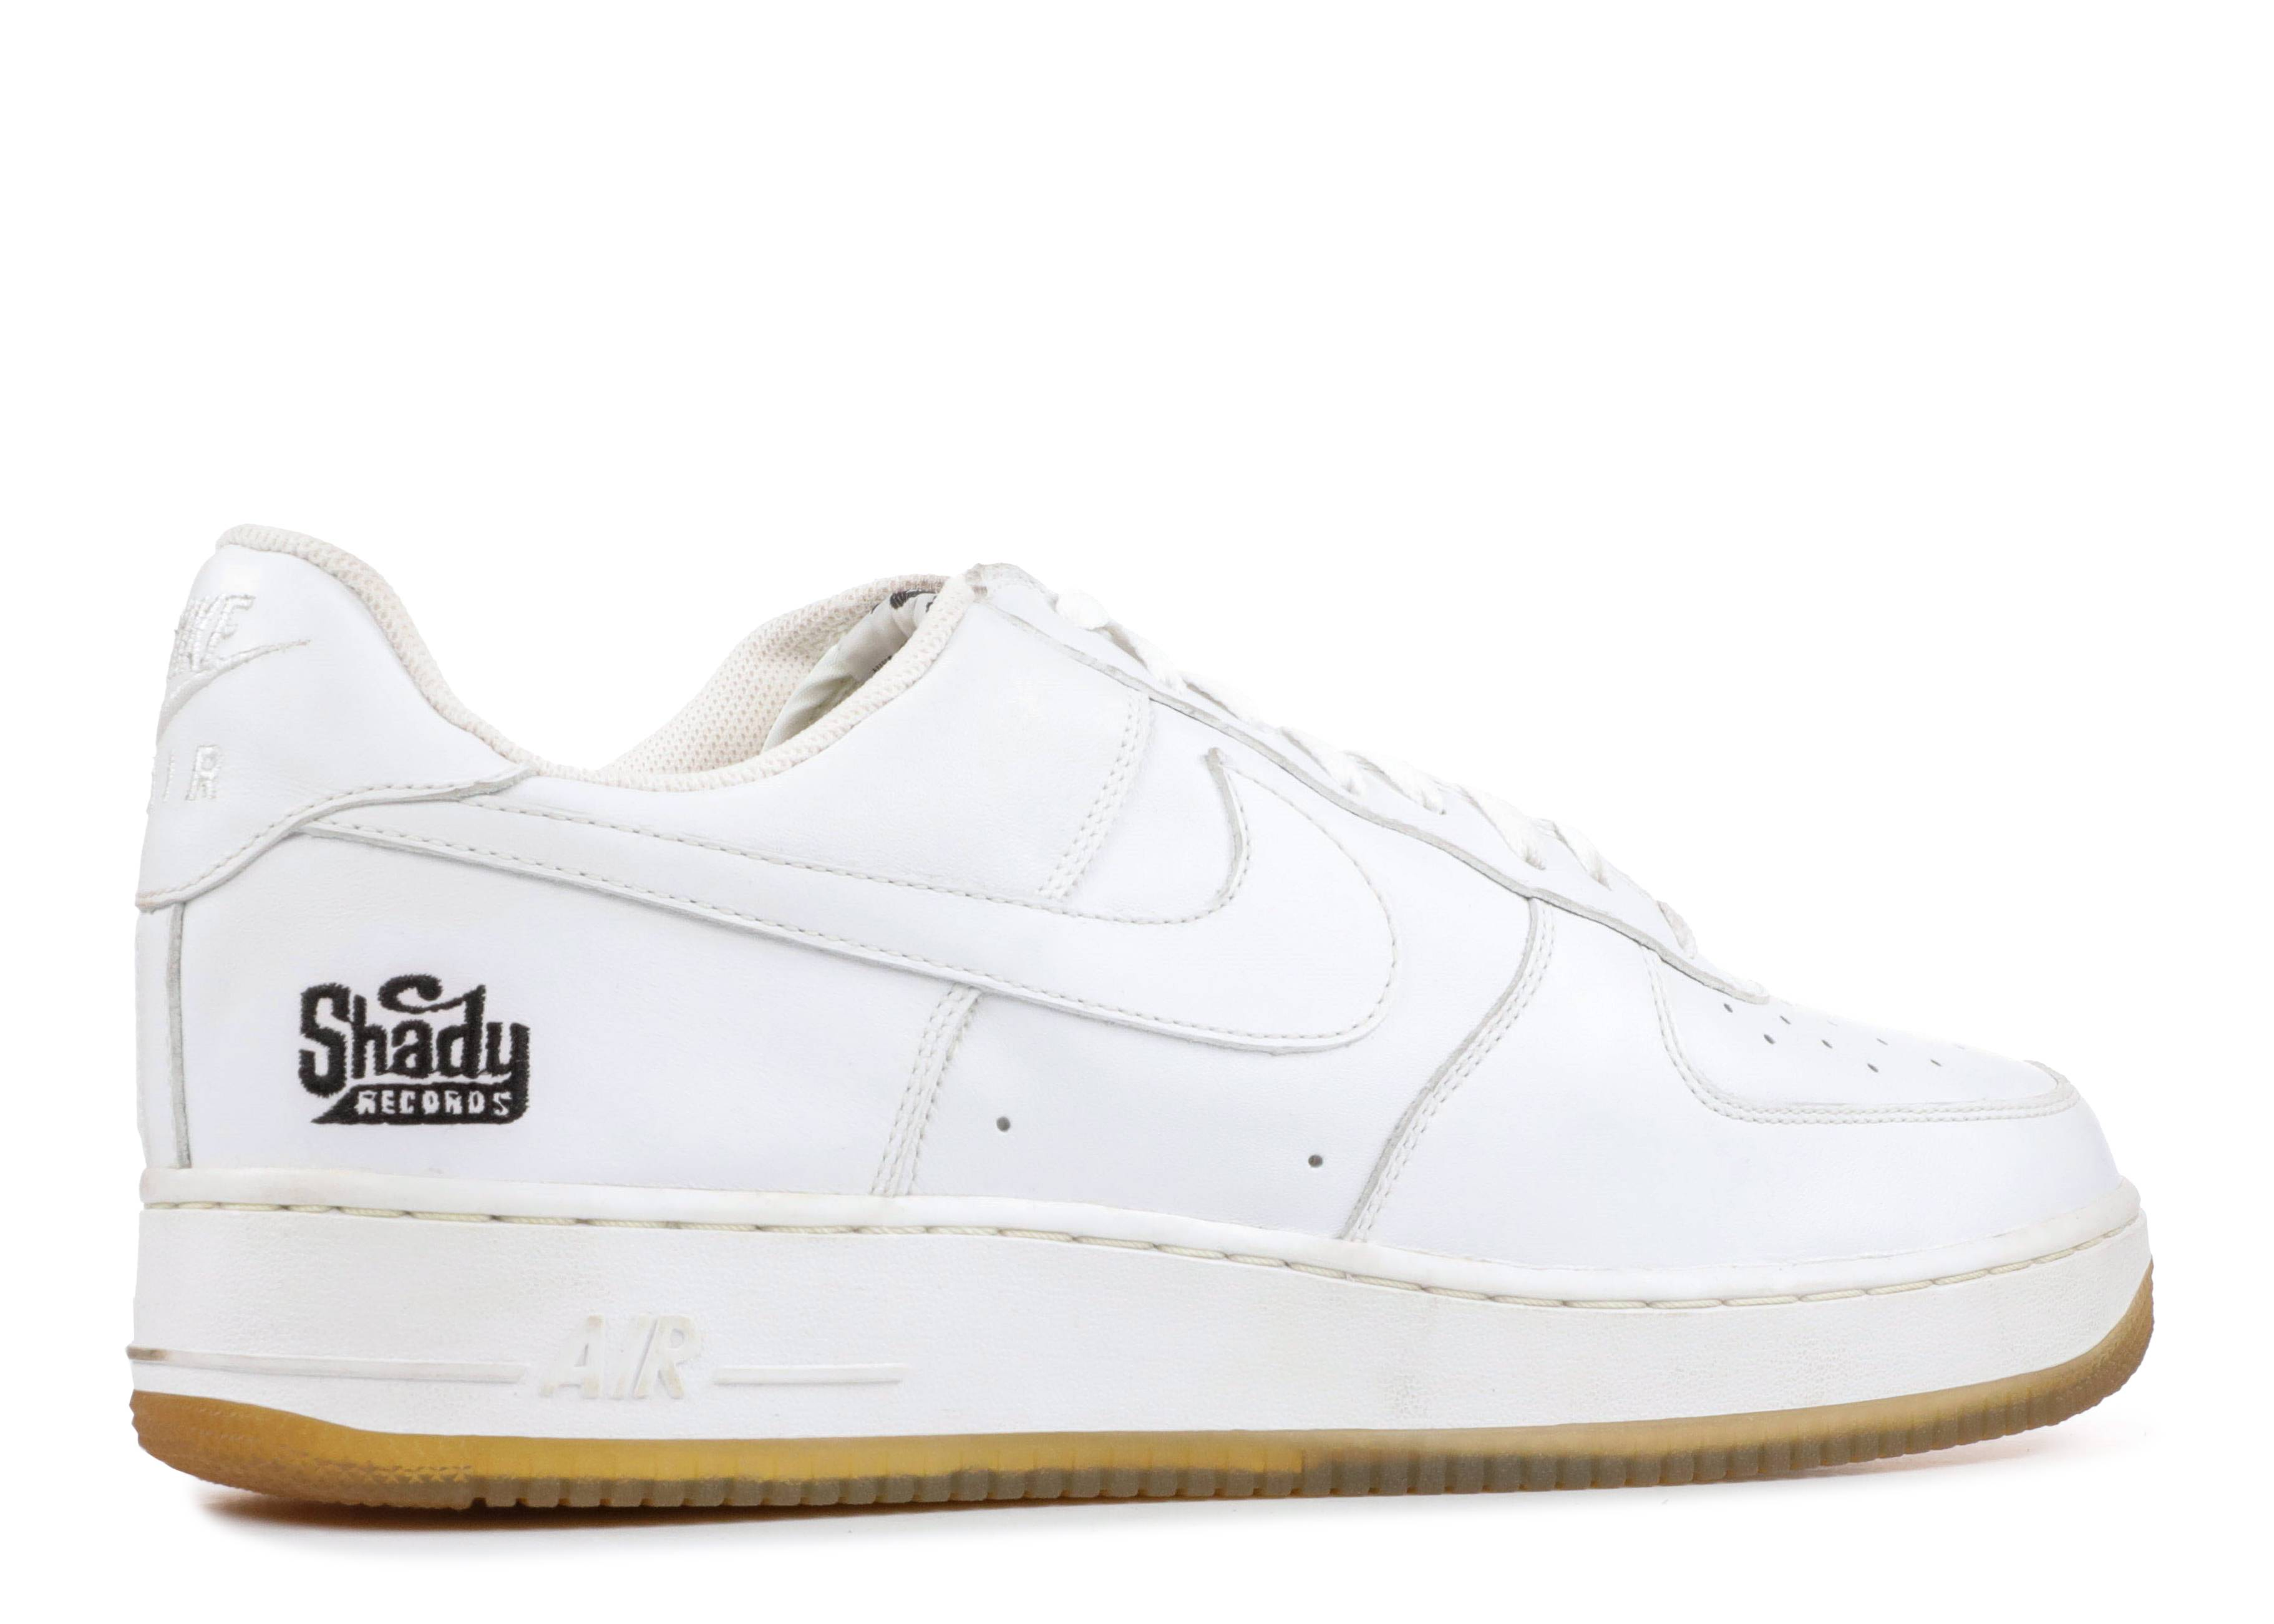 ... coupon for air force 1 shady records nike 306033 112 white white shady  records flight club 24c1f4129